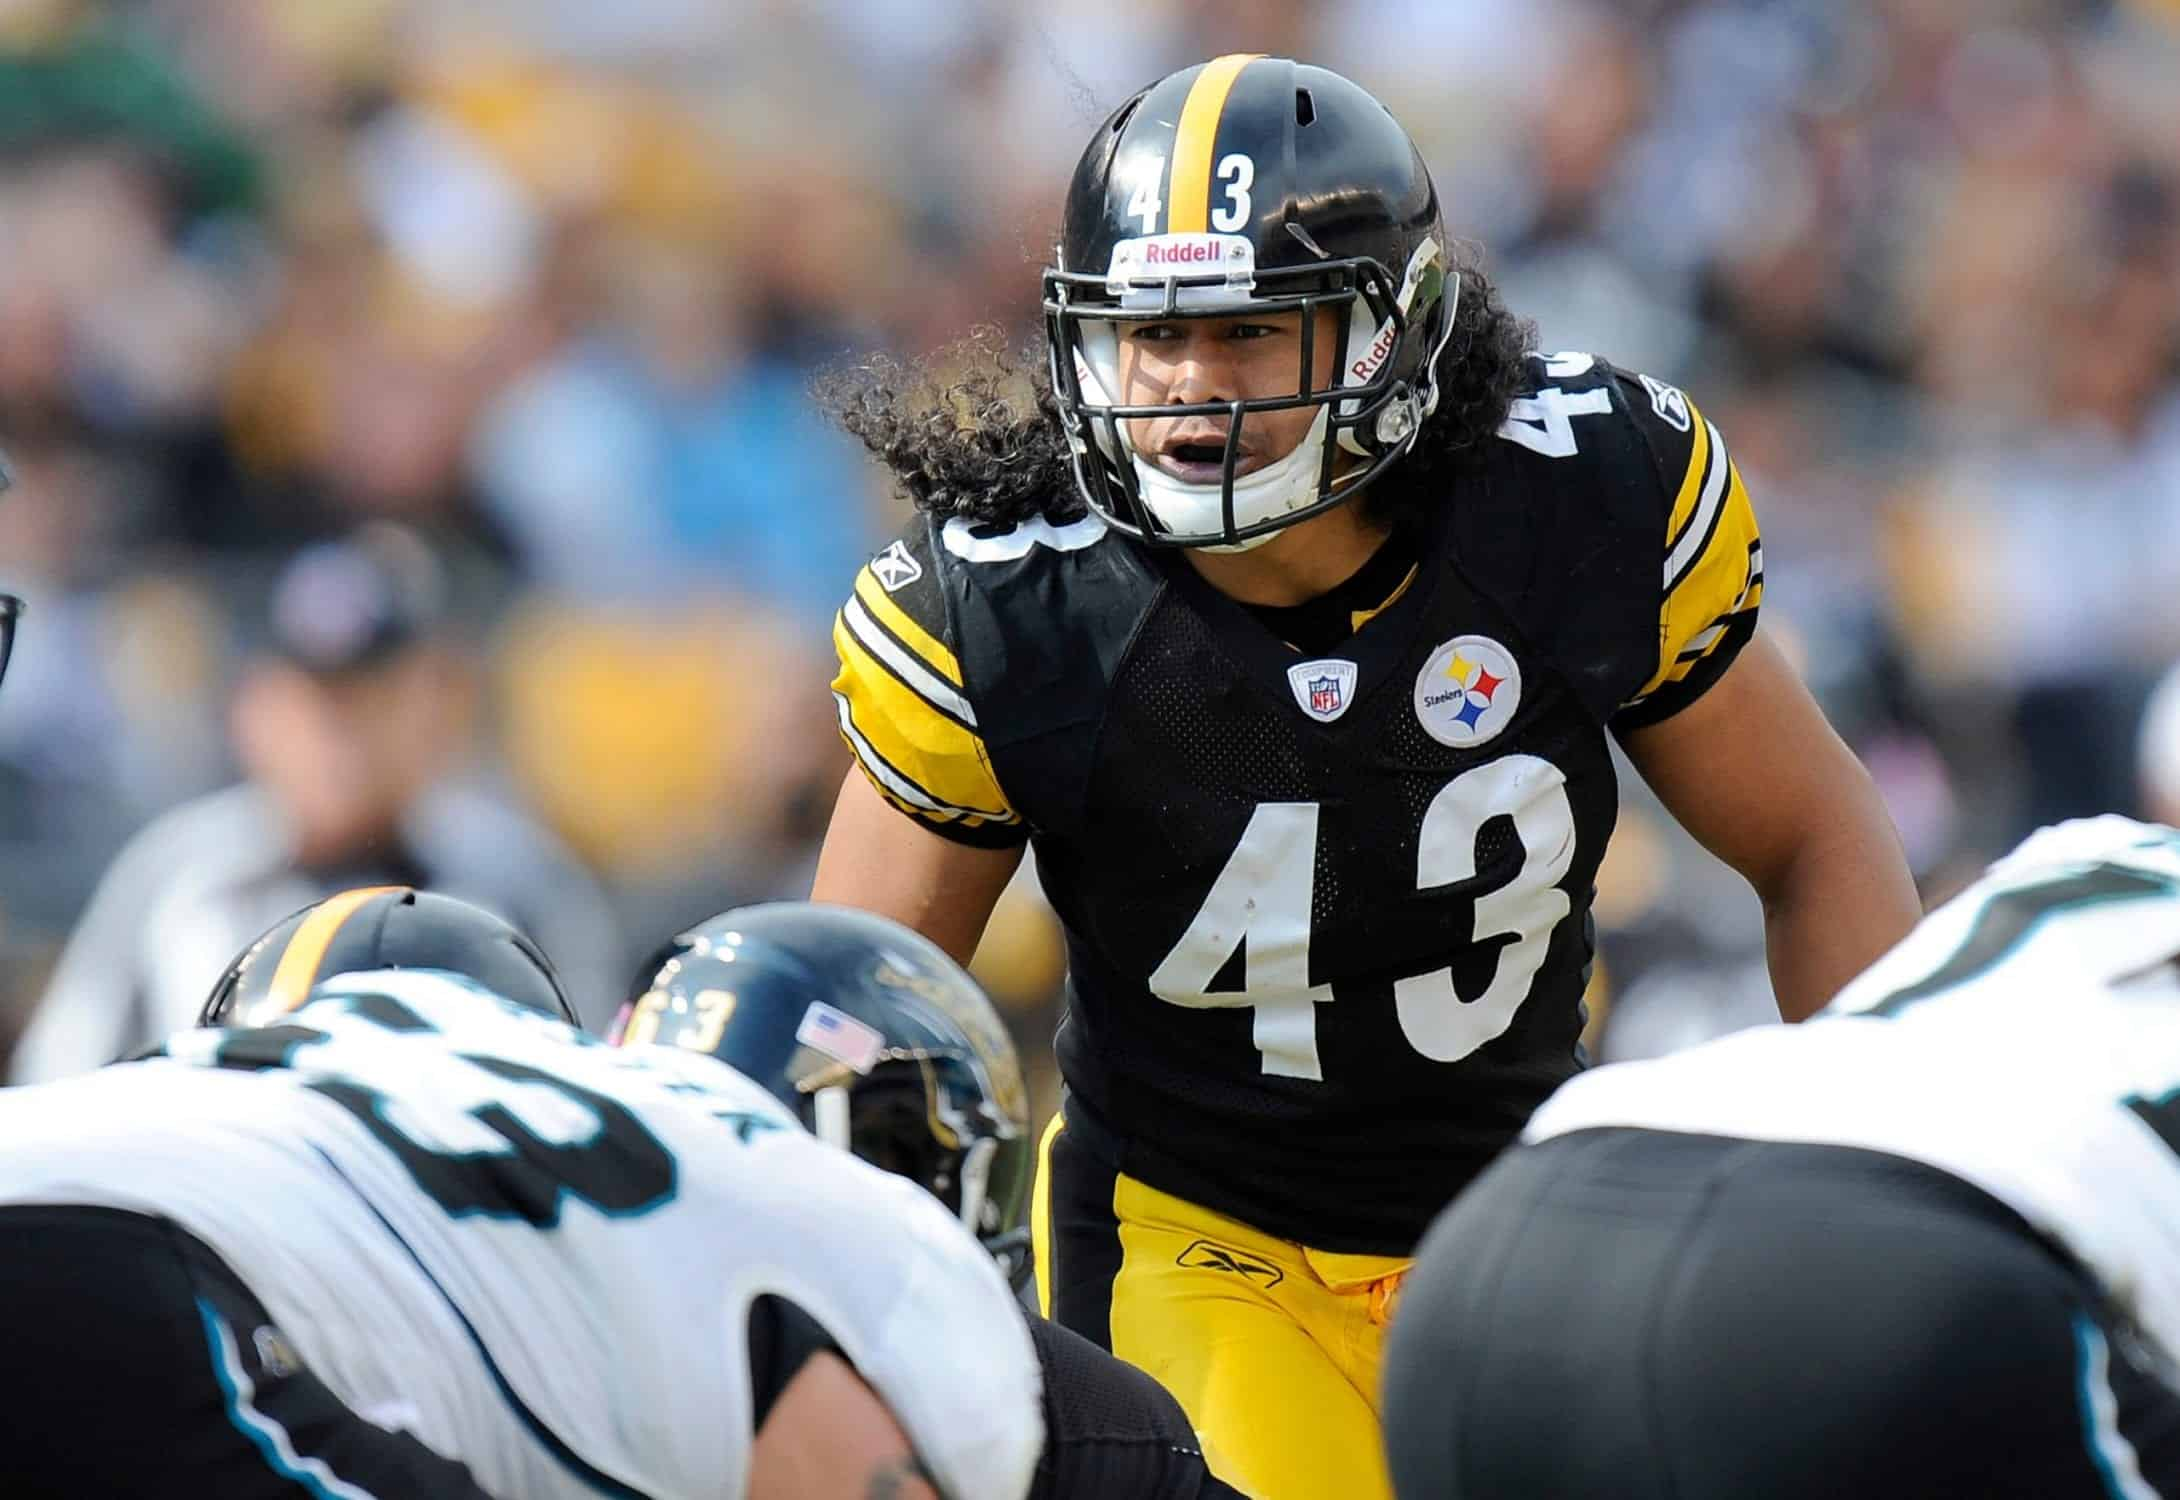 Troy Polamalu headlines the Pro Football Hall of Fame Class of 2020